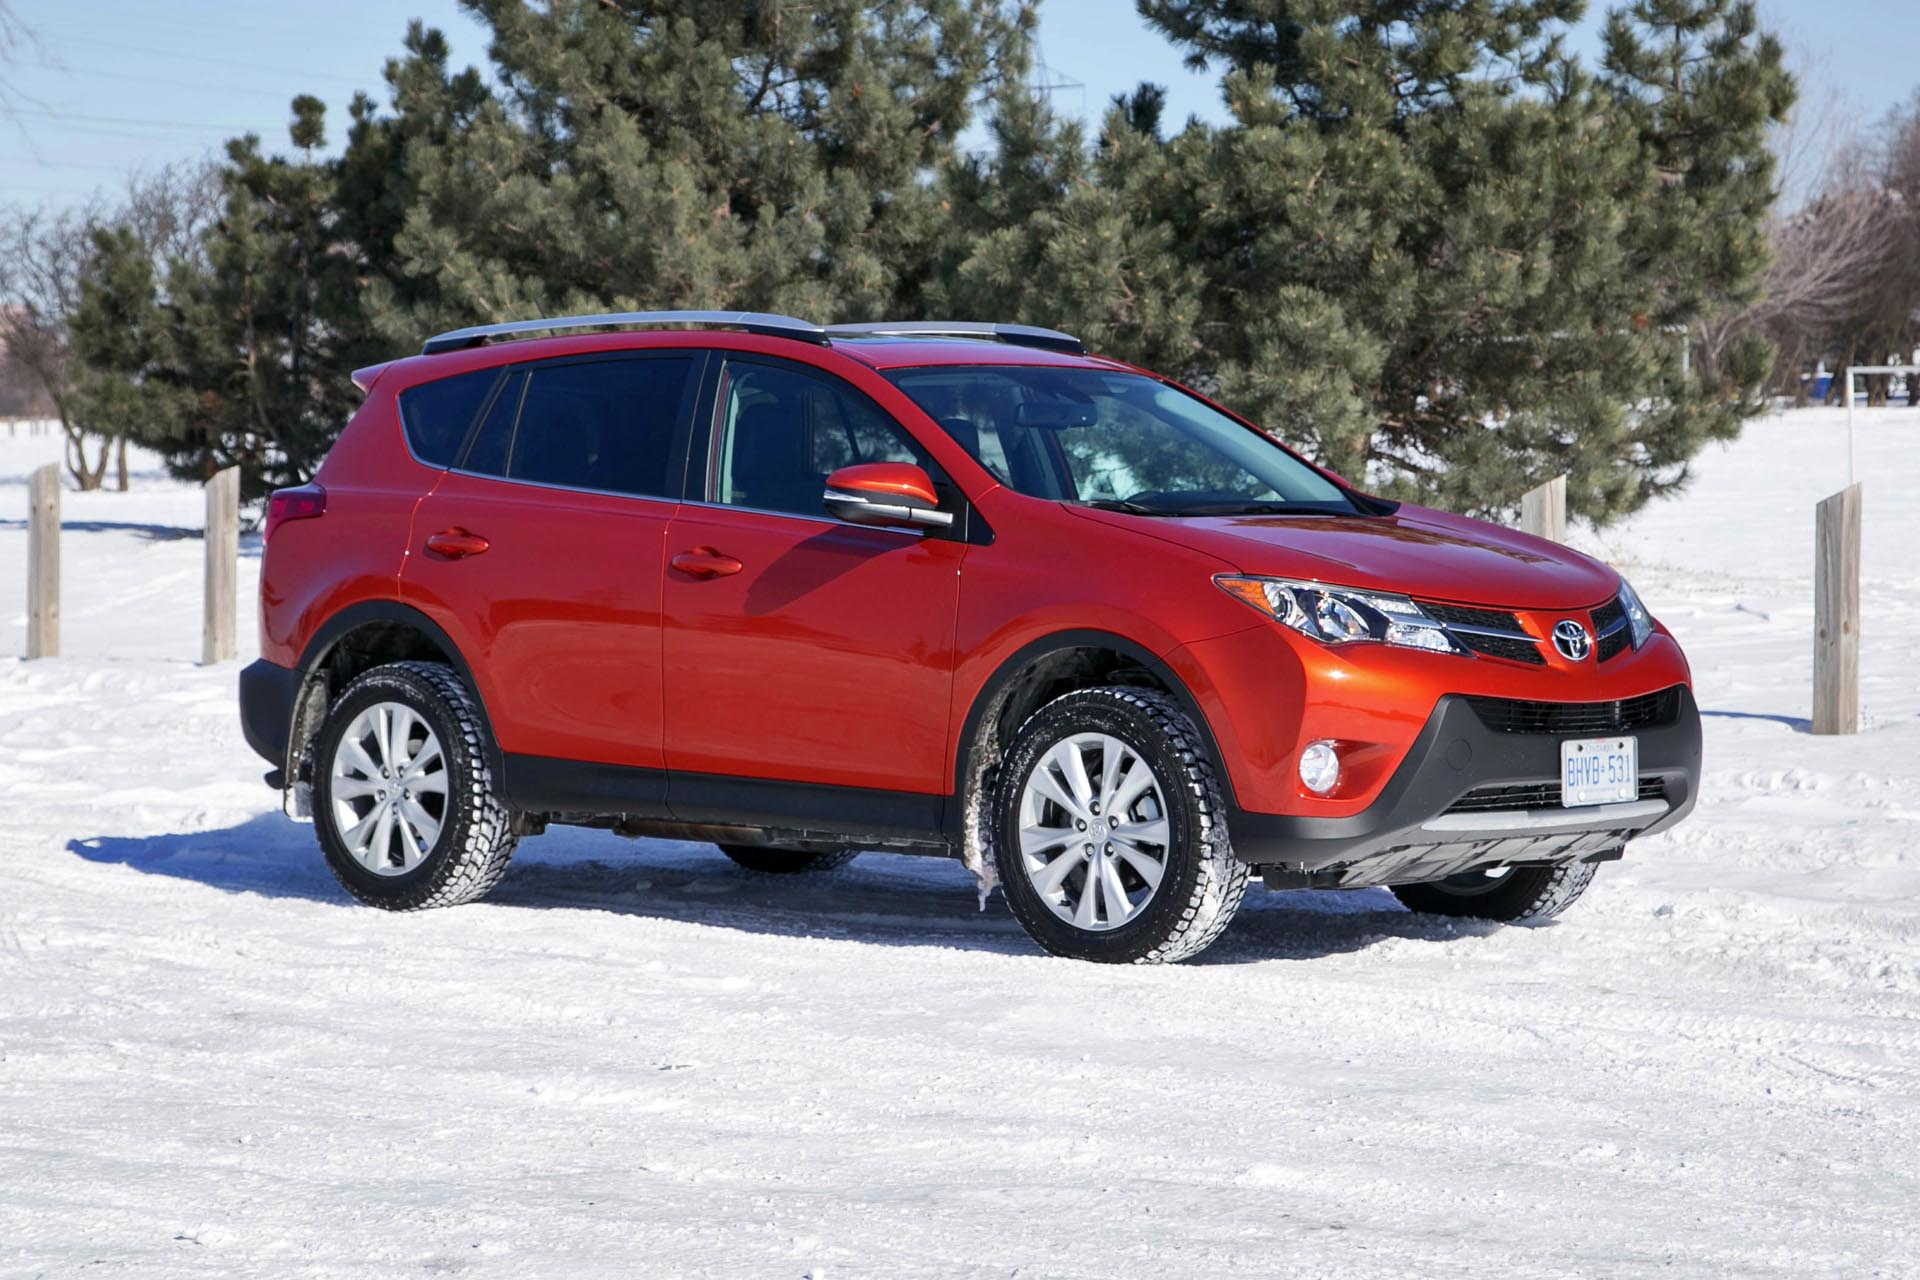 2015 toyota rav4 prices nadaguides autos post. Black Bedroom Furniture Sets. Home Design Ideas